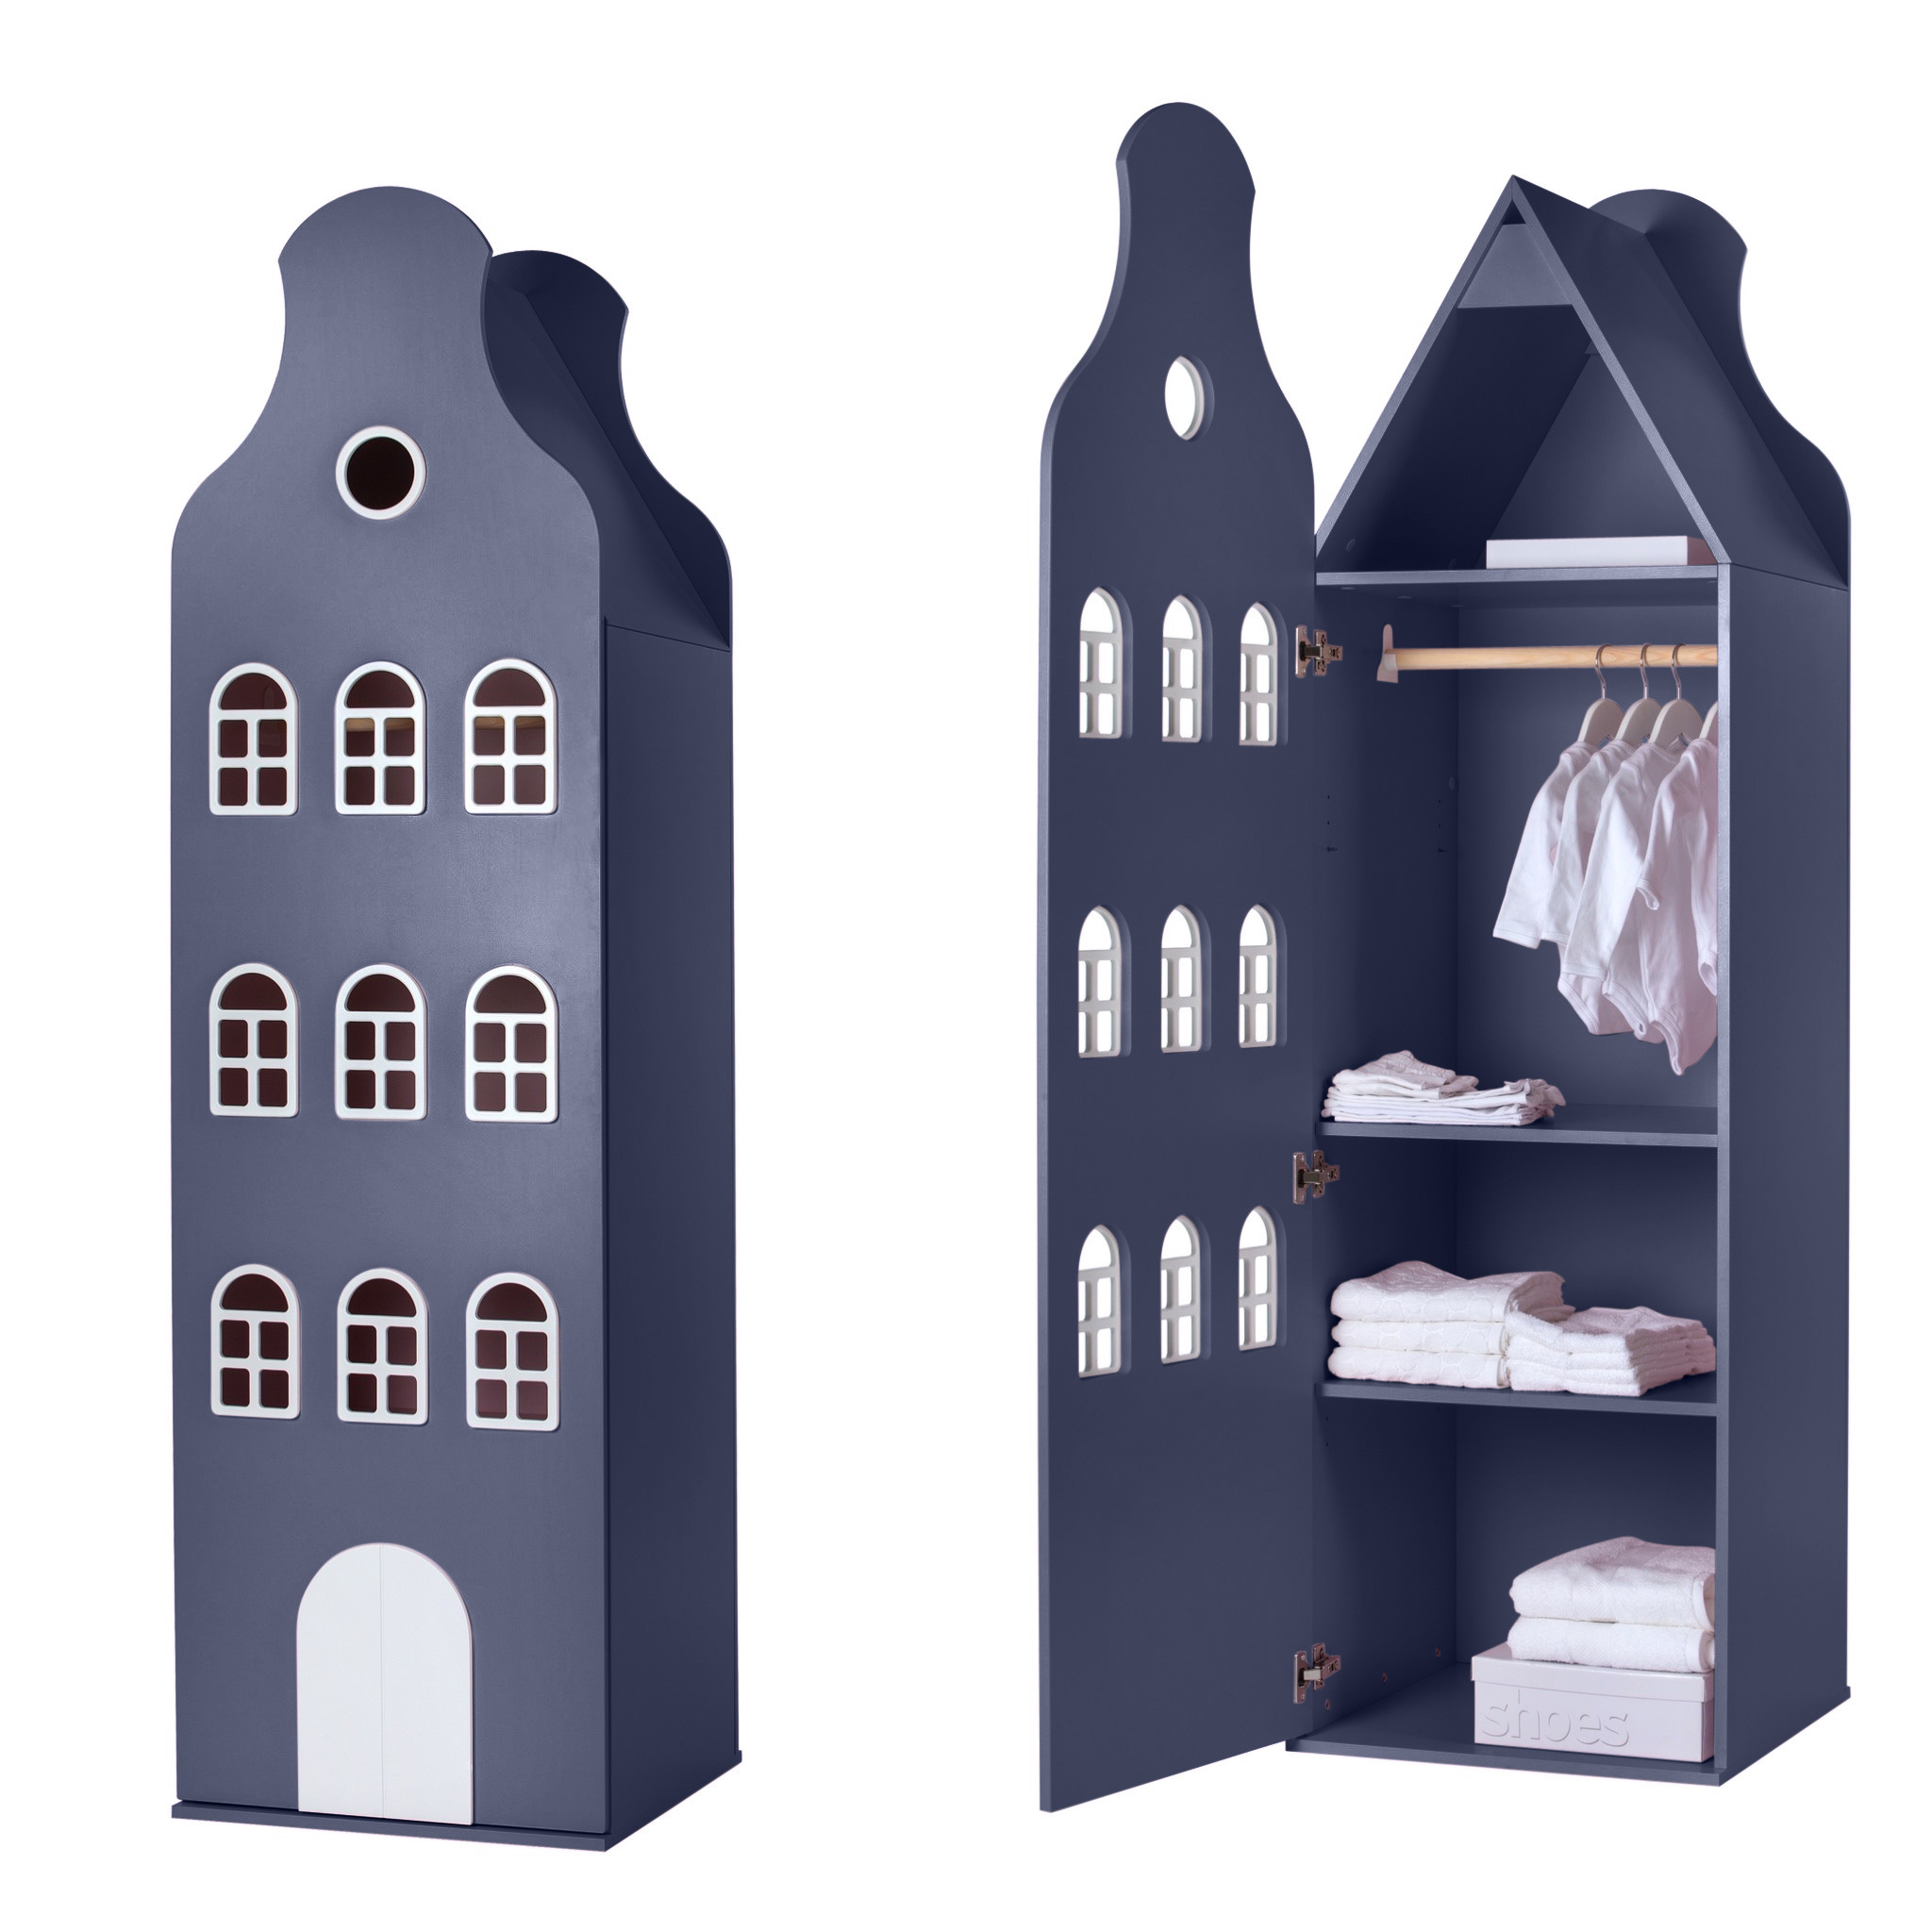 Cabinet Amsterdam Bellgable, XL 216/60/60 cm. All colors.-4